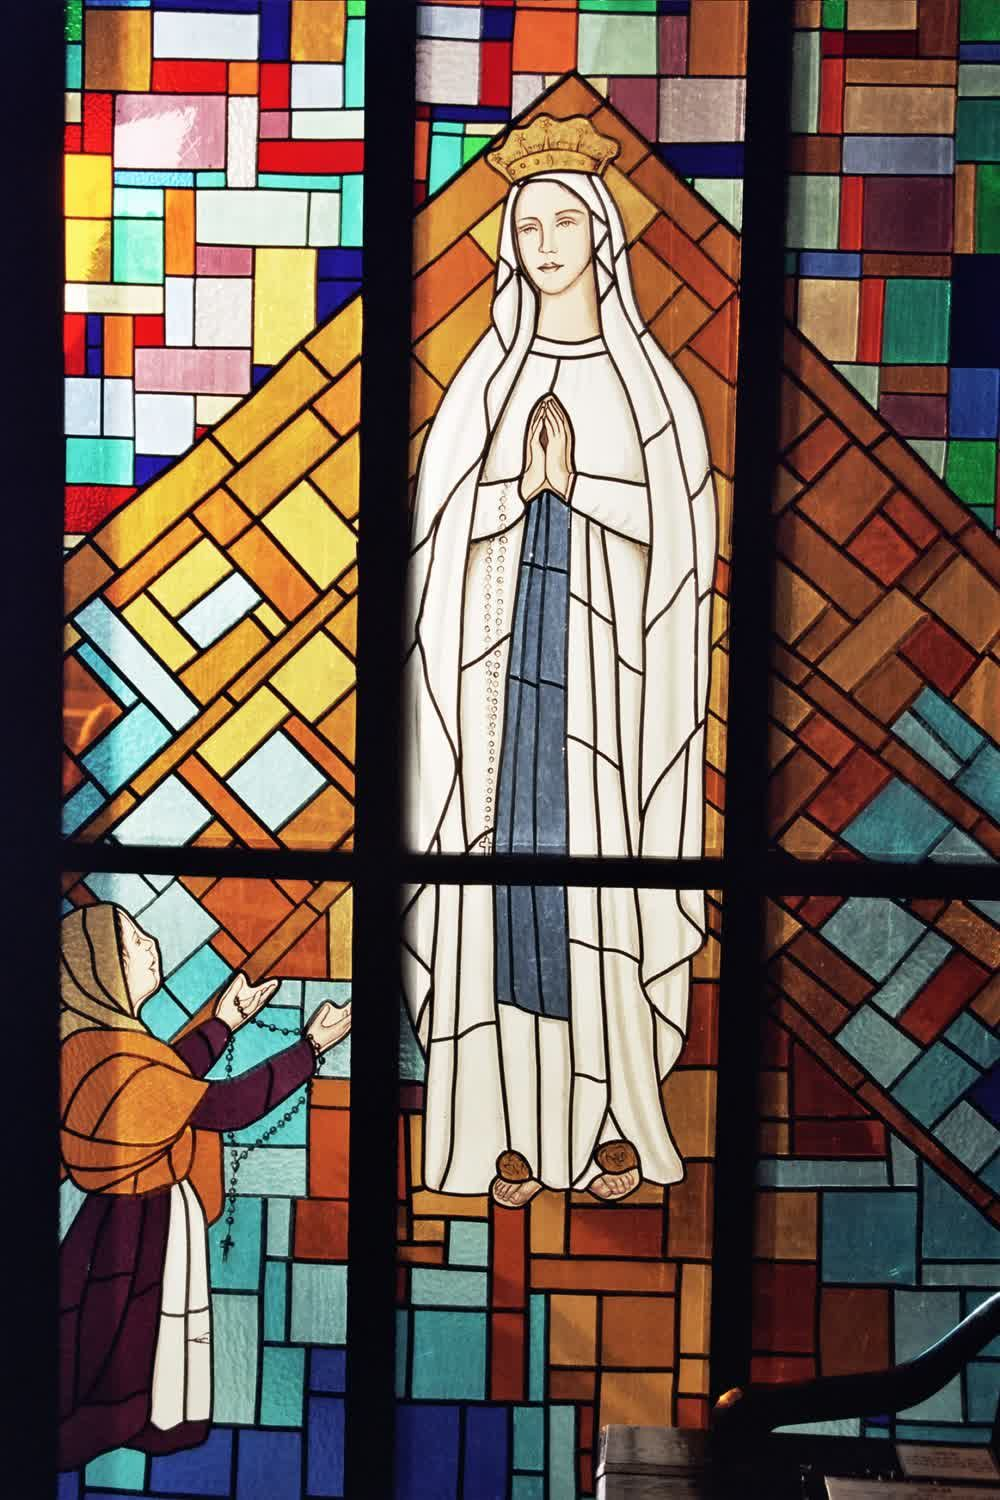 title: Saint Mary Mosaic of Stained Glass in Church